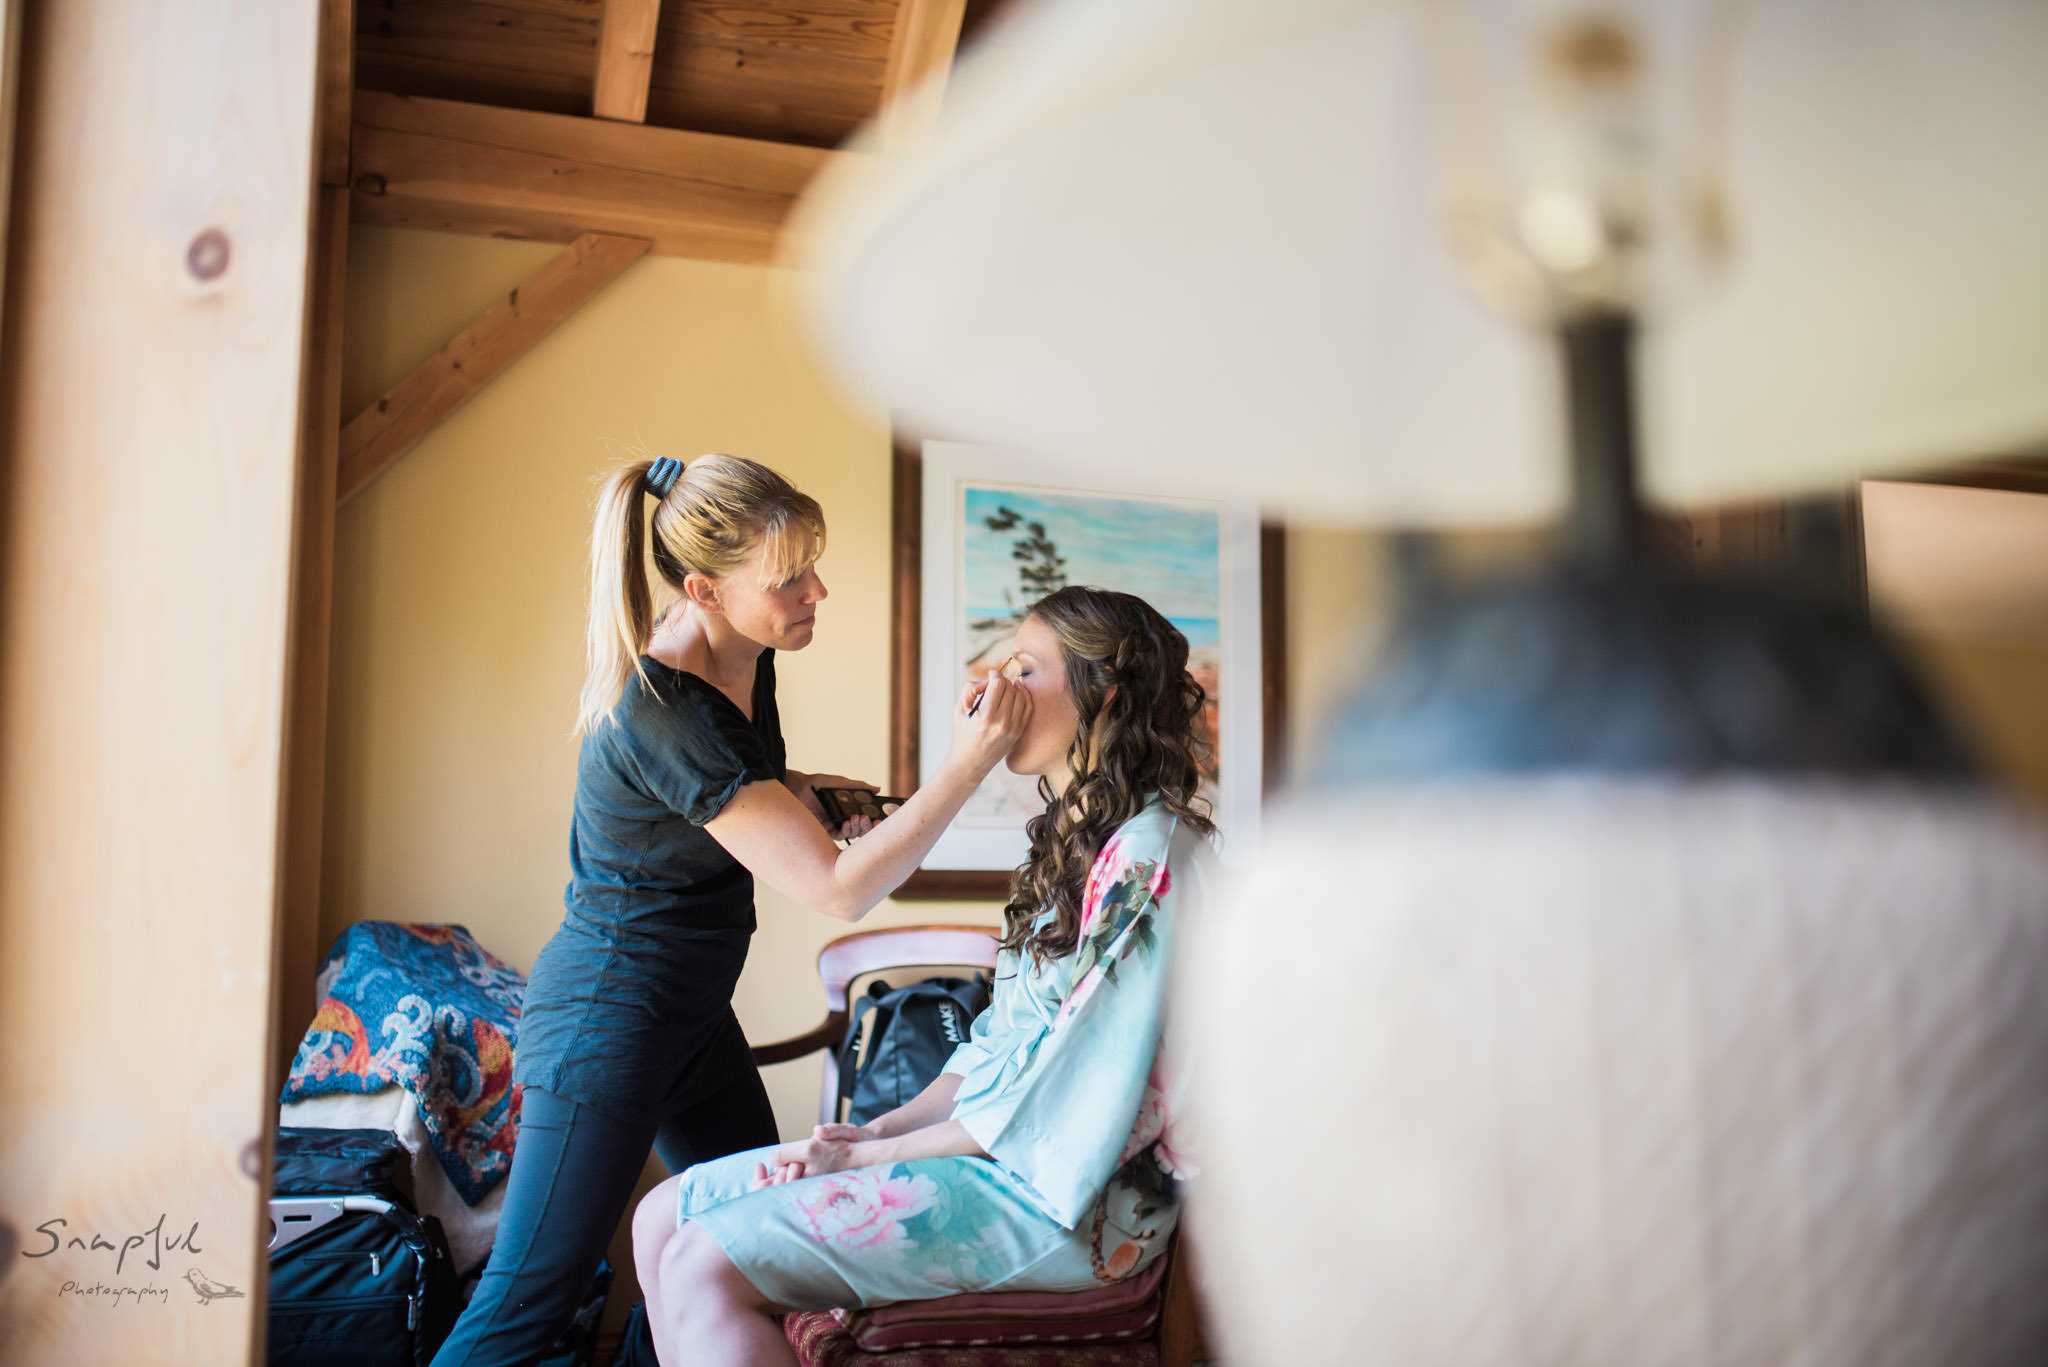 Makeup artist working on bride